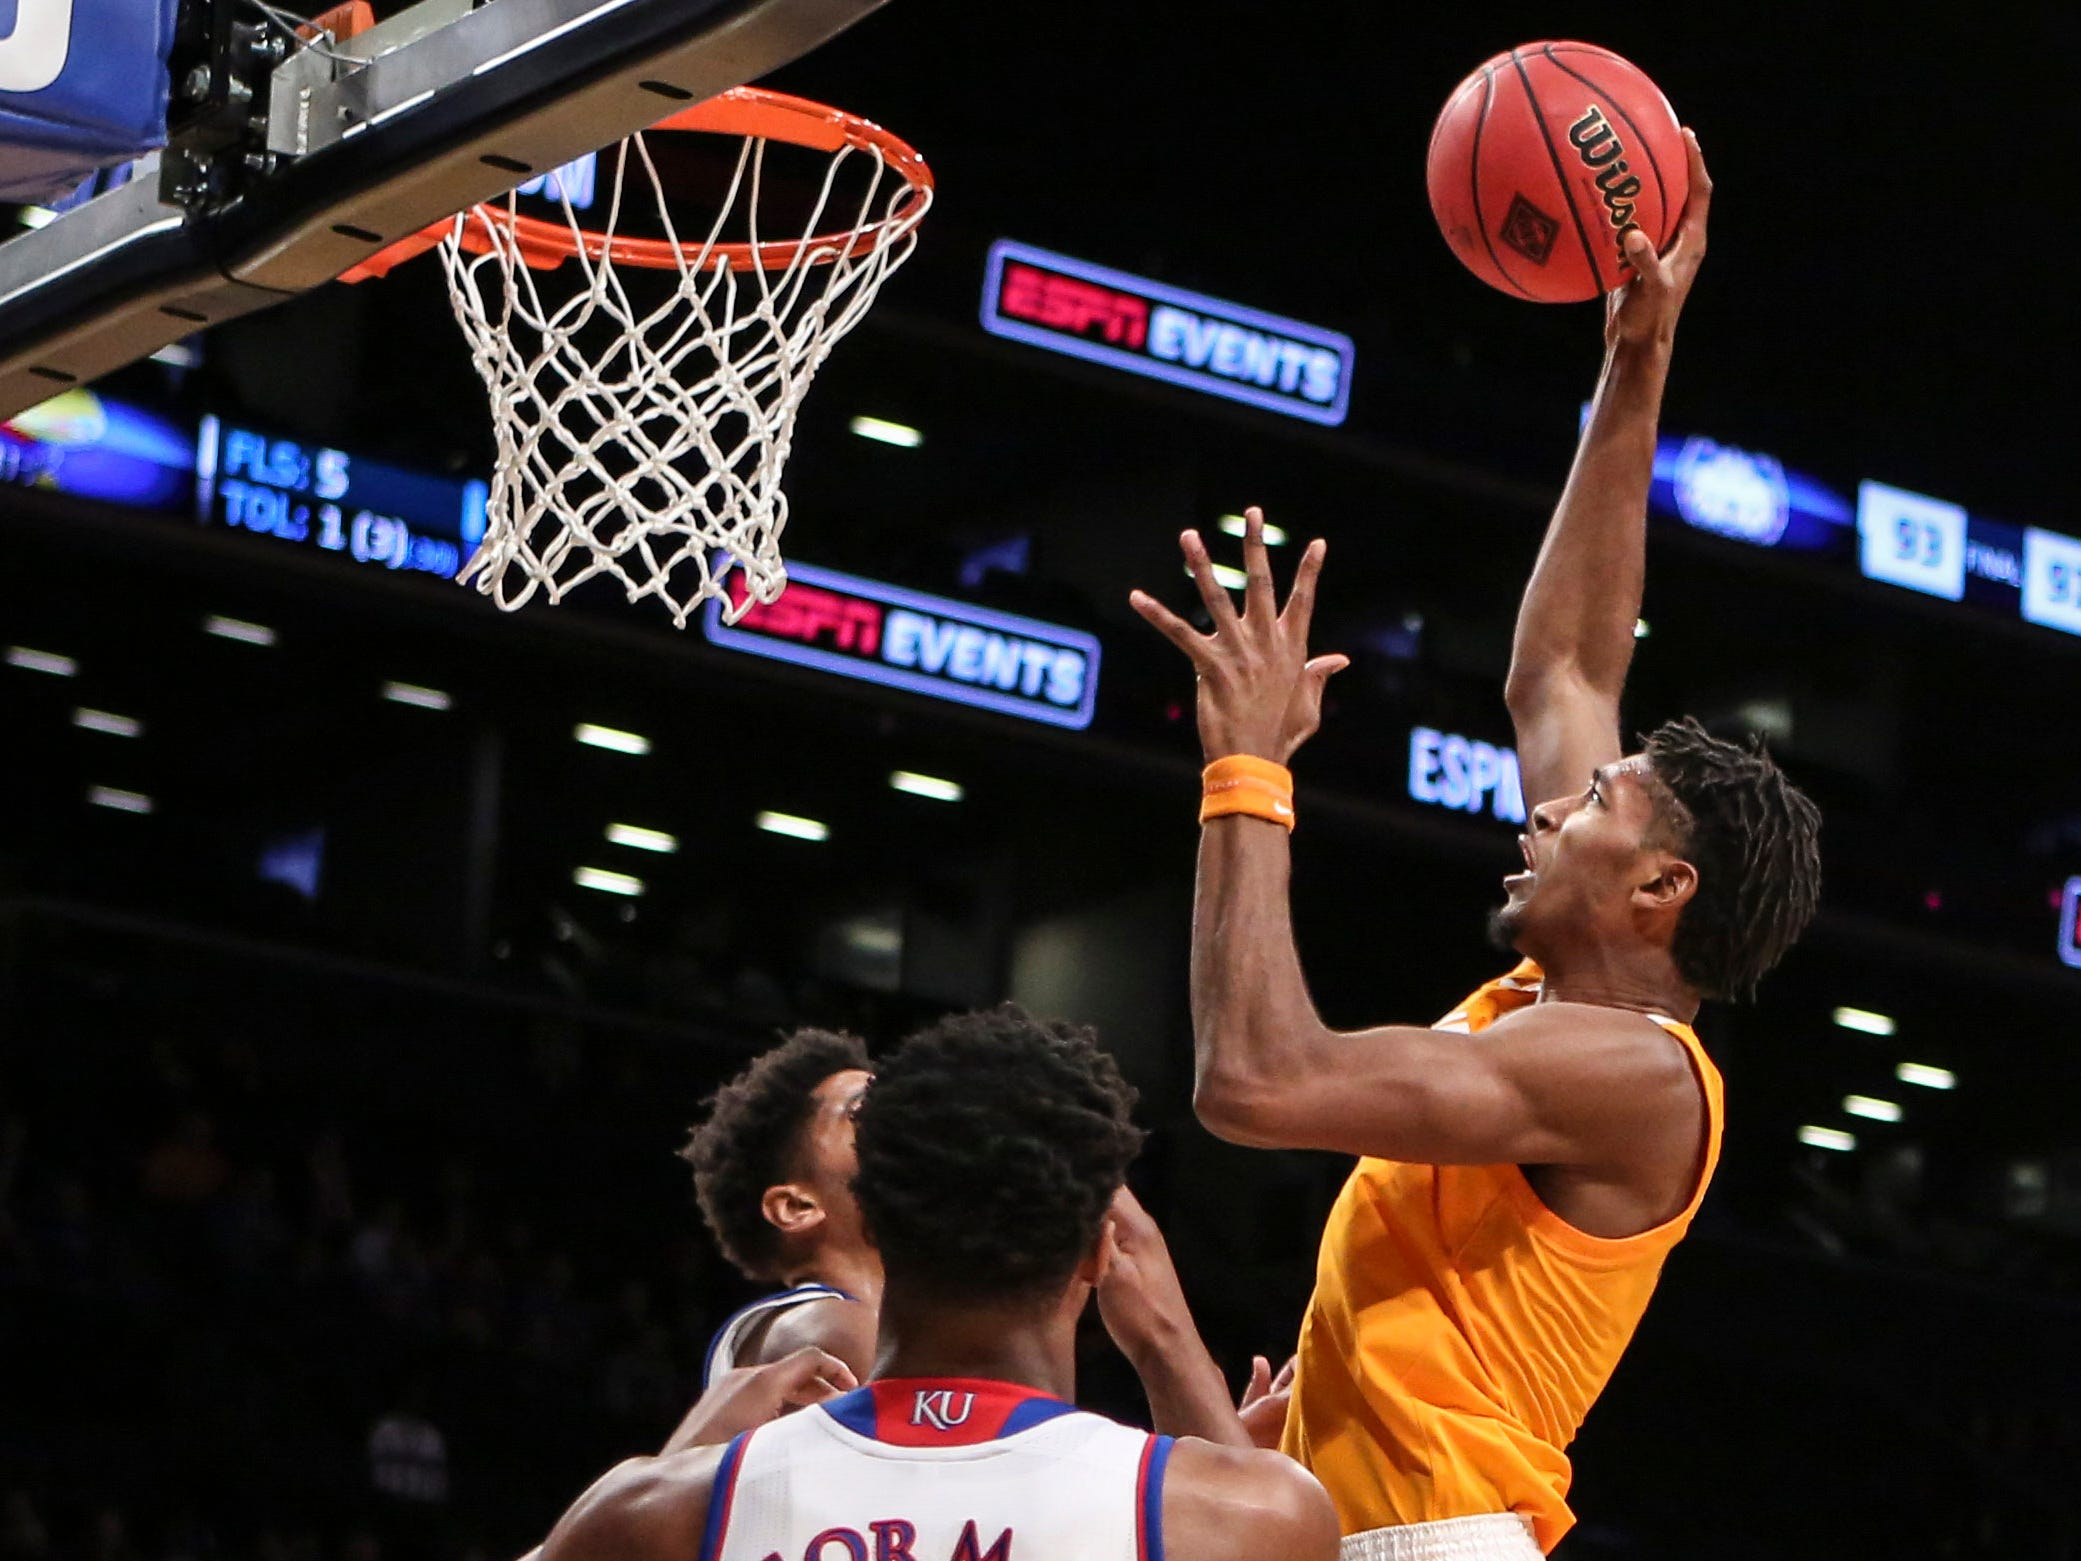 Nov 23, 2018; Brooklyn, NY, USA; Tennessee Volunteers forward Kyle Alexander (11) puts up a shot in the first half of the championship game of the NIT Season Tipoff against the Kansas Jayhawks at Barclays Center. Mandatory Credit: Wendell Cruz-USA TODAY Sports